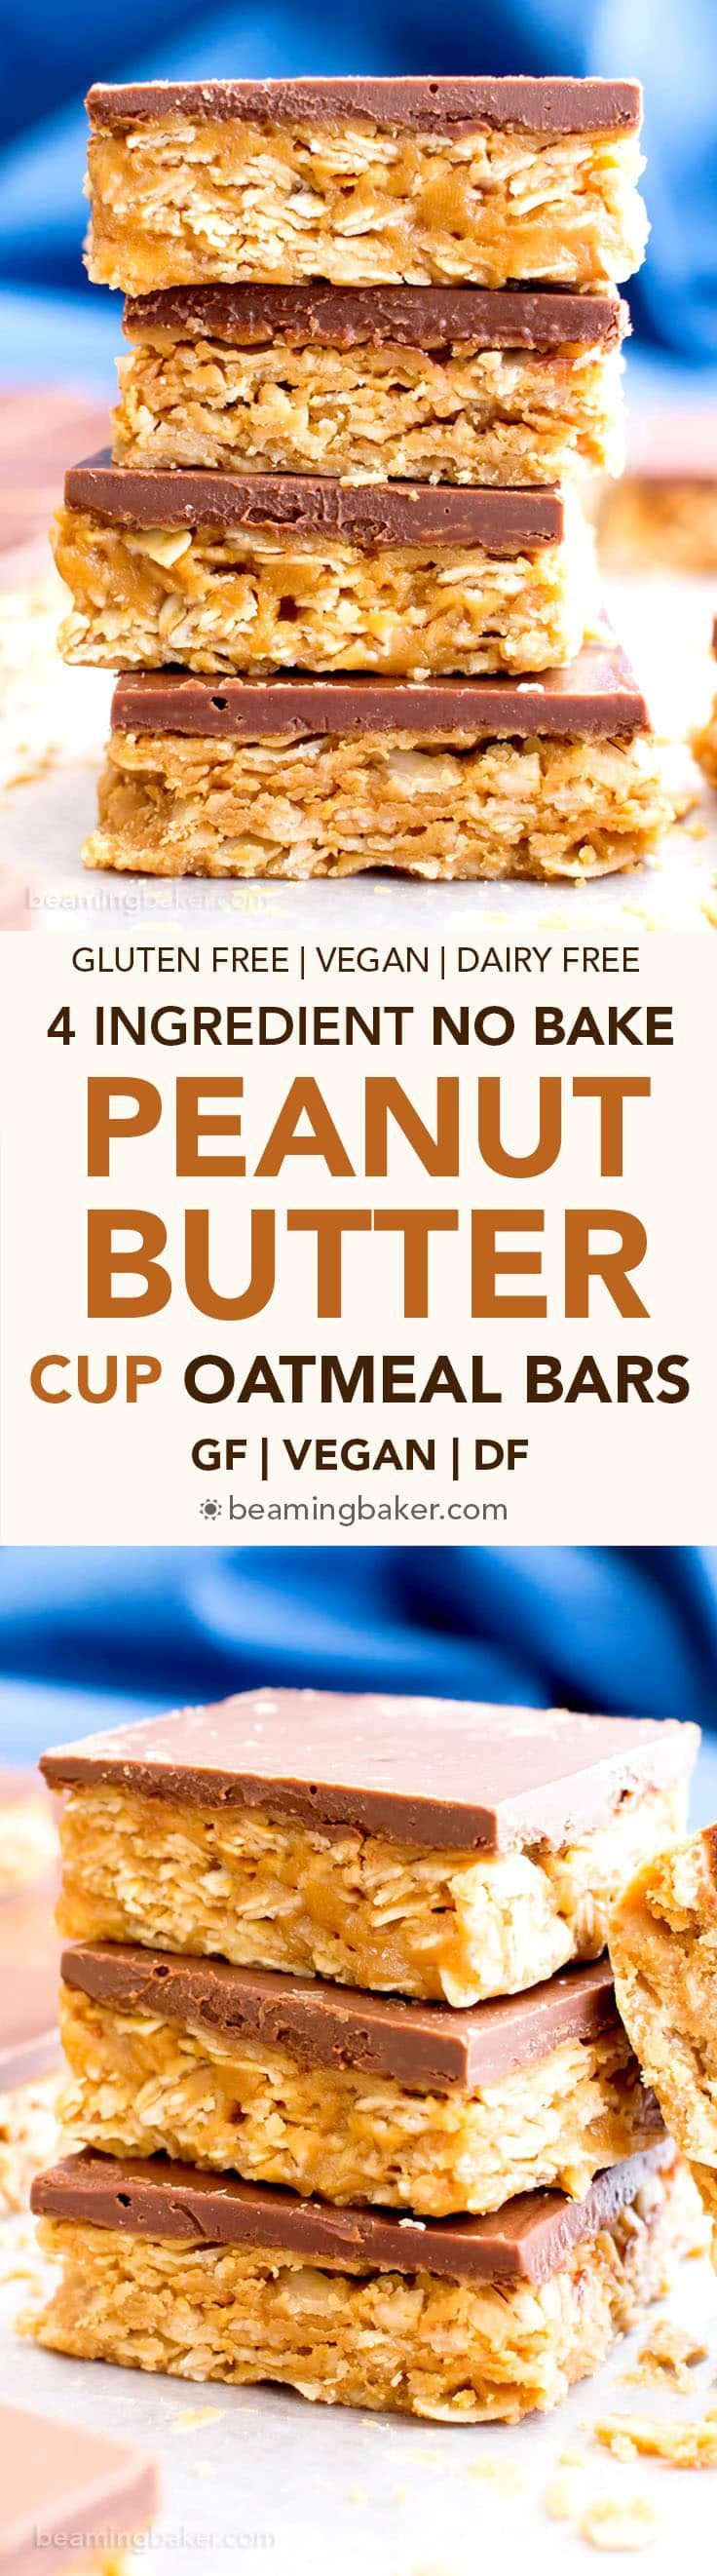 Ingredient No Bake Chocolate Peanut Butter Cup Granola Bars (GF, V): an easy, protein-rich recipe for decadent PB granola bars covered in chocolate, made with whole ingredients. |